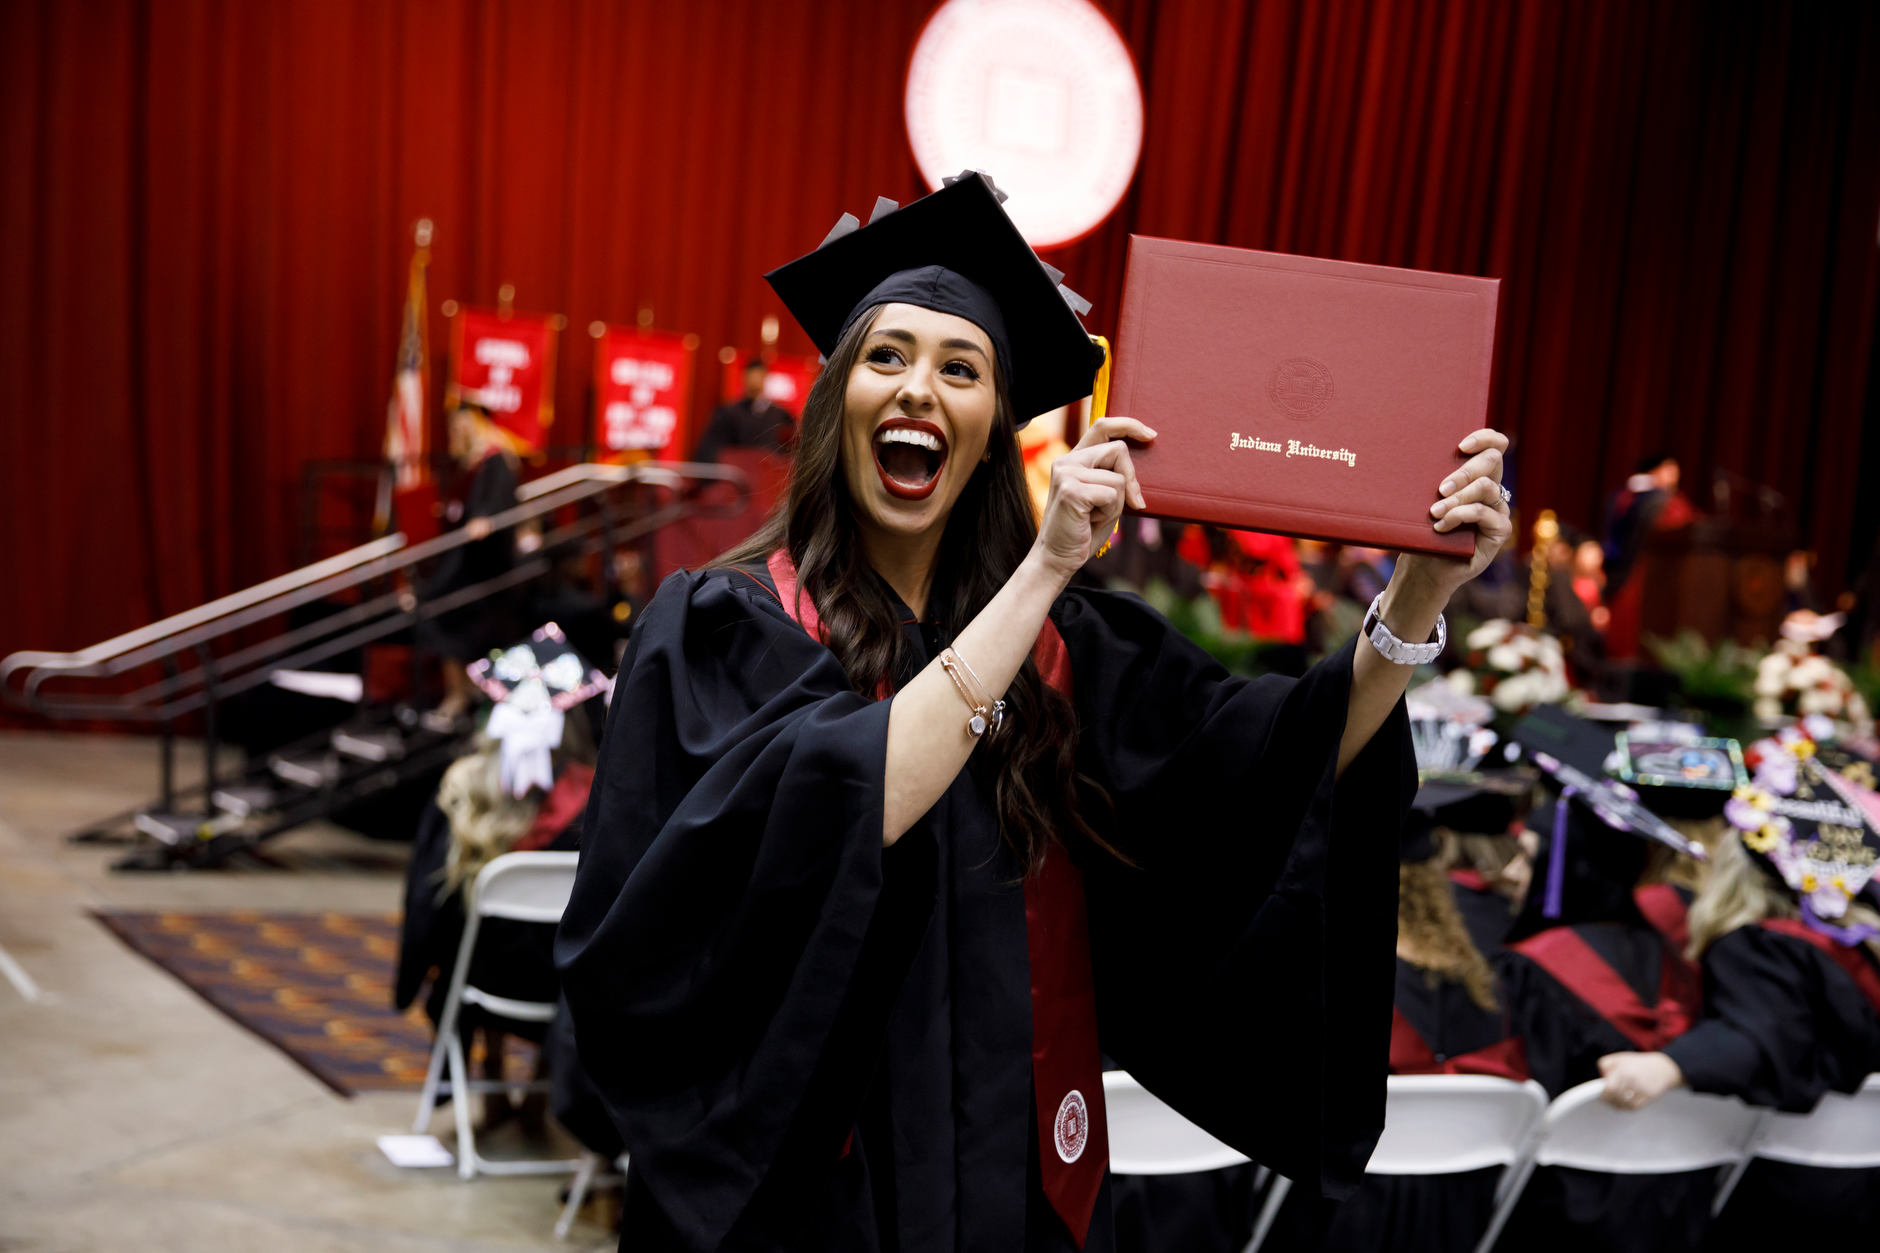 A graduate celebrates after receiving her diploma during the Indiana University Northwest Commencement at the Genesis Convention Center on Thursday, May 9, 2019. (James Brosher/Indiana University)